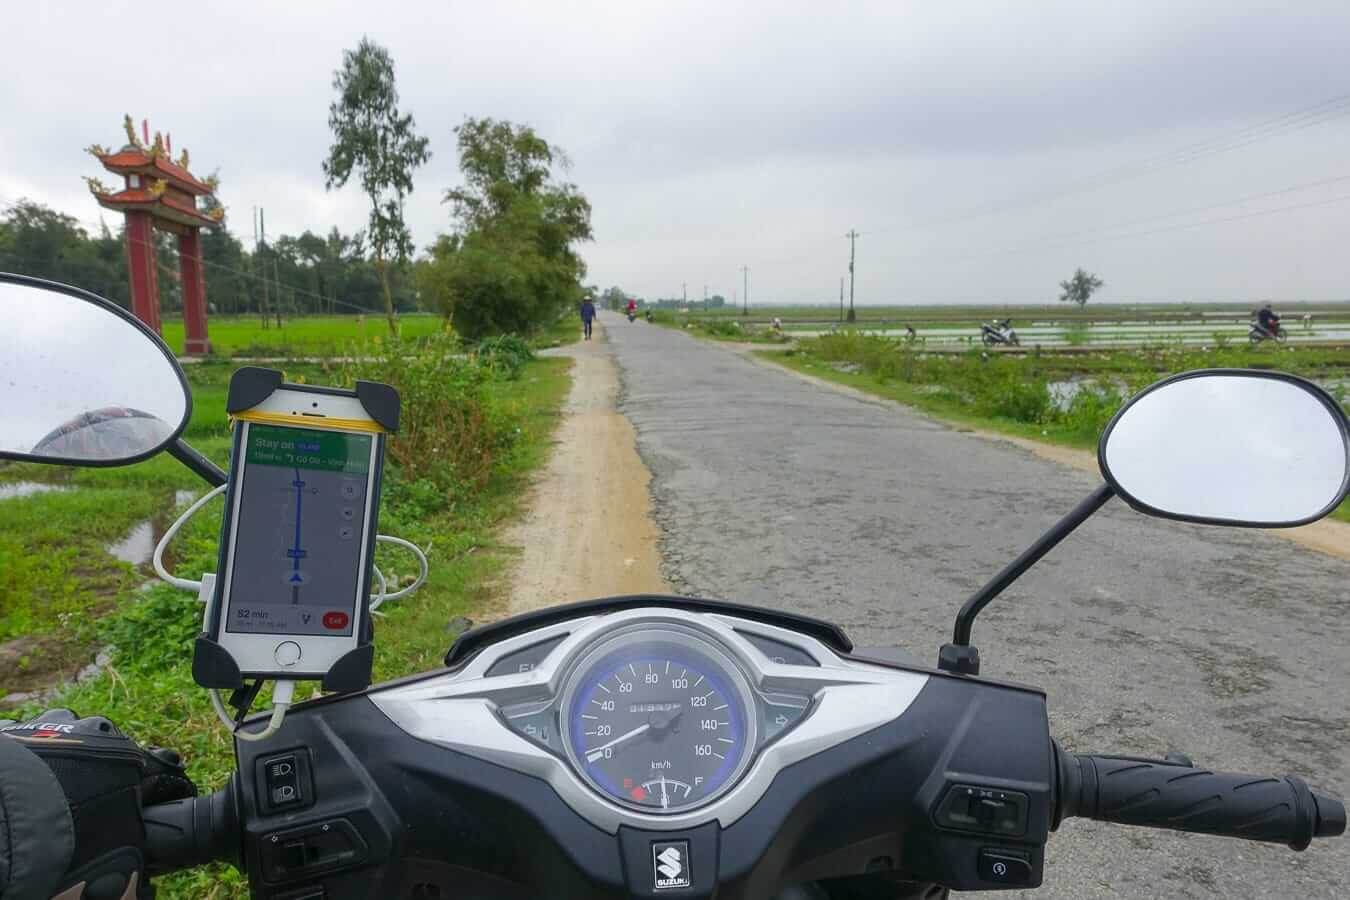 Hue to Hoi An by motorbike route